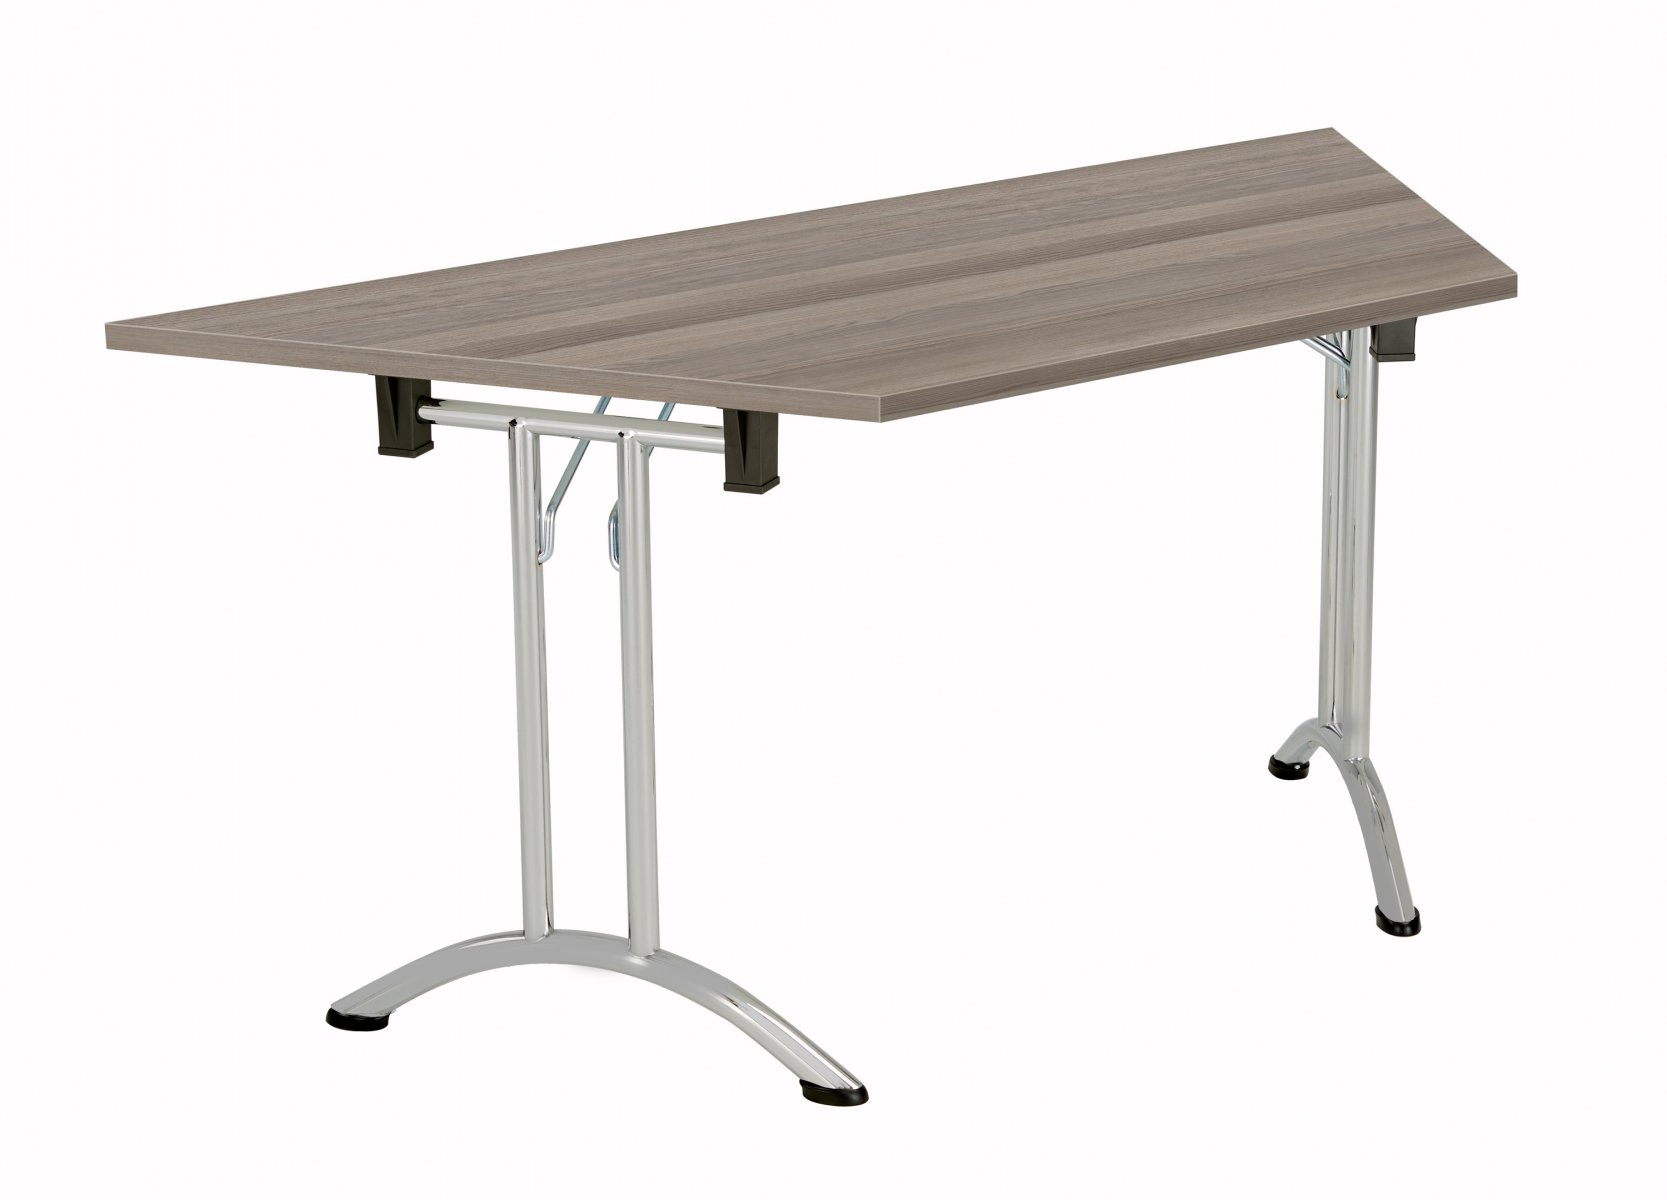 Union Trapezoidal 140 Folding Meeting Table - Grey Oak with Silver Frame